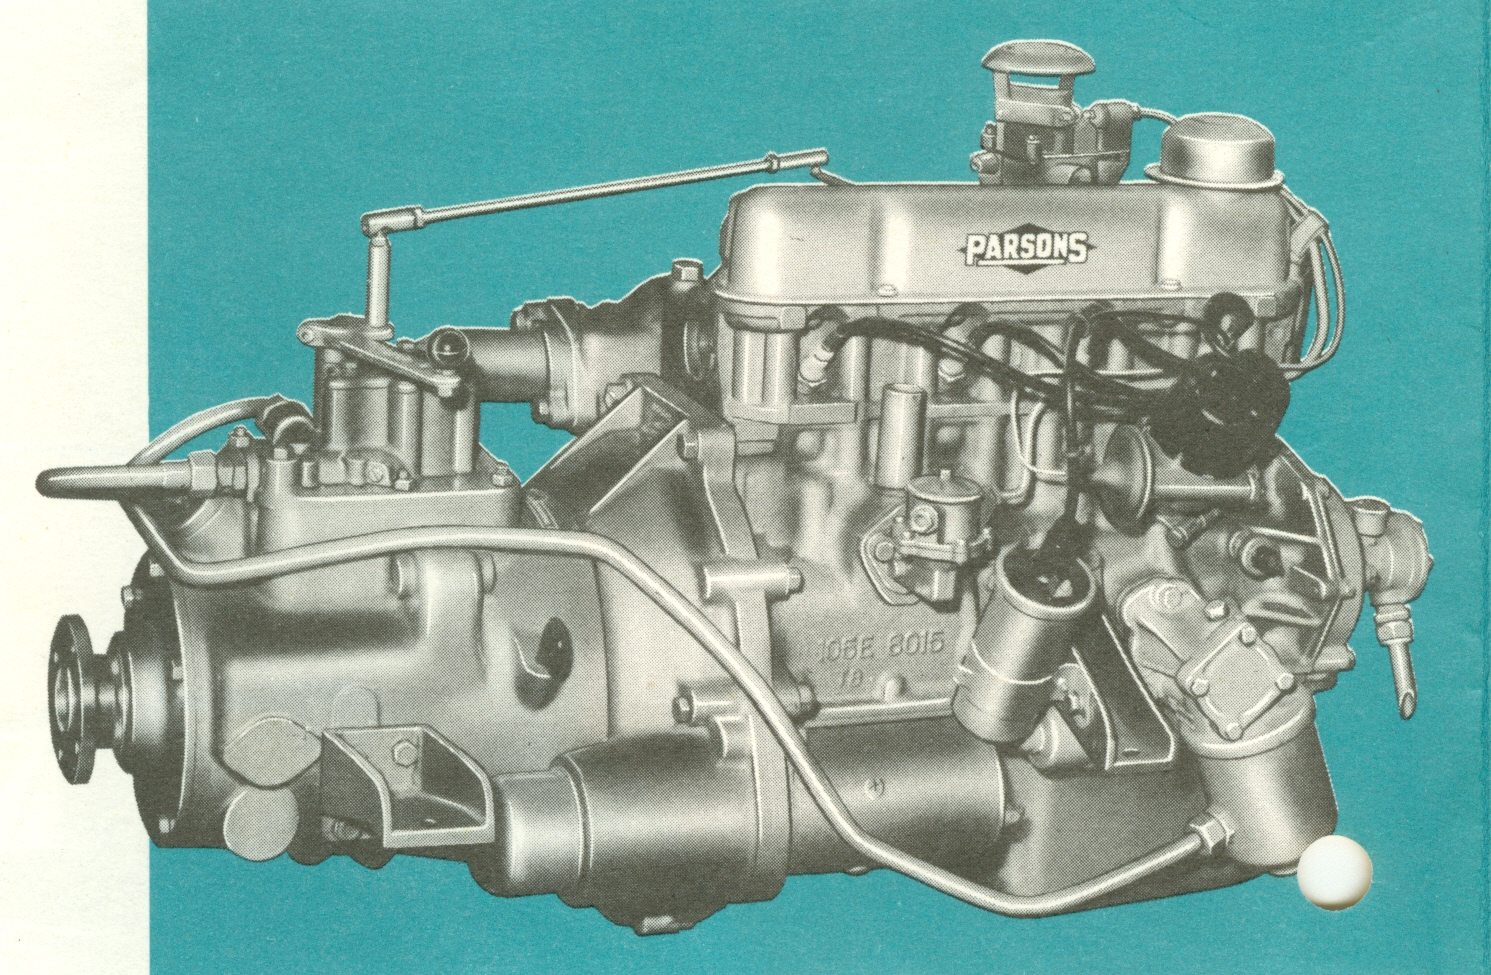 Parsons Sea Urchin engine